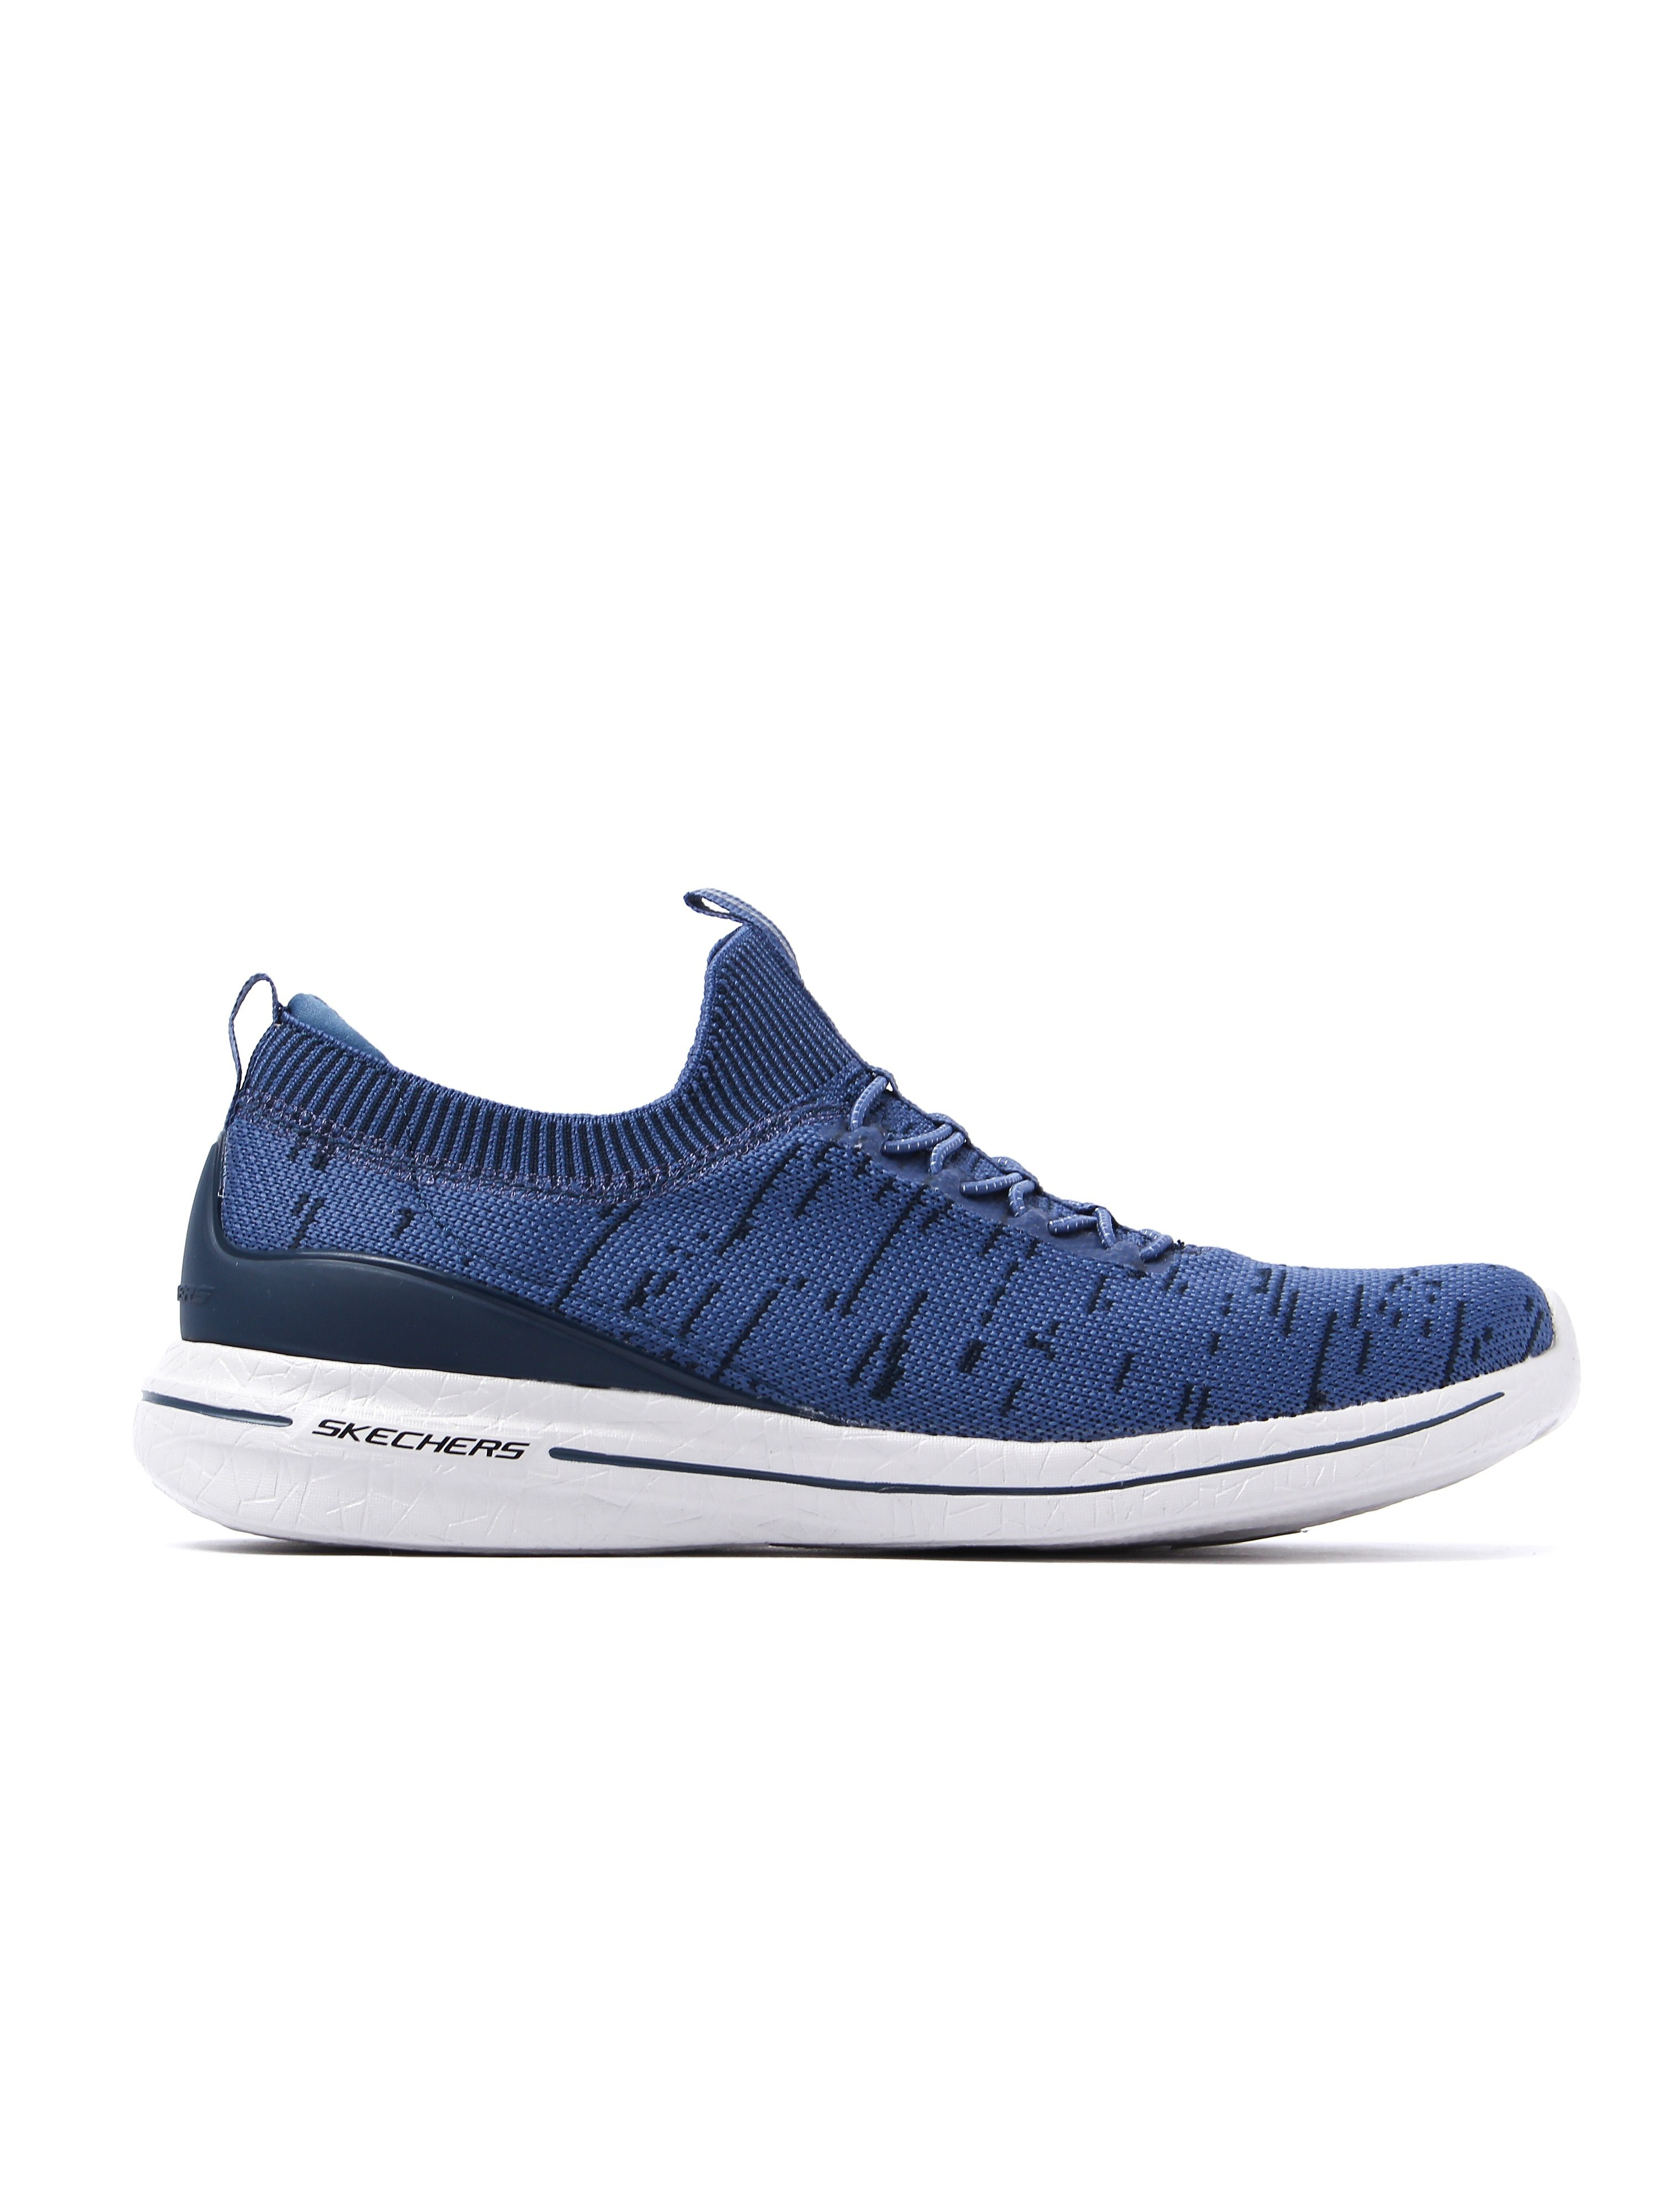 Skechers Women's Burst 2.0 In The Cards Trainers - Navy